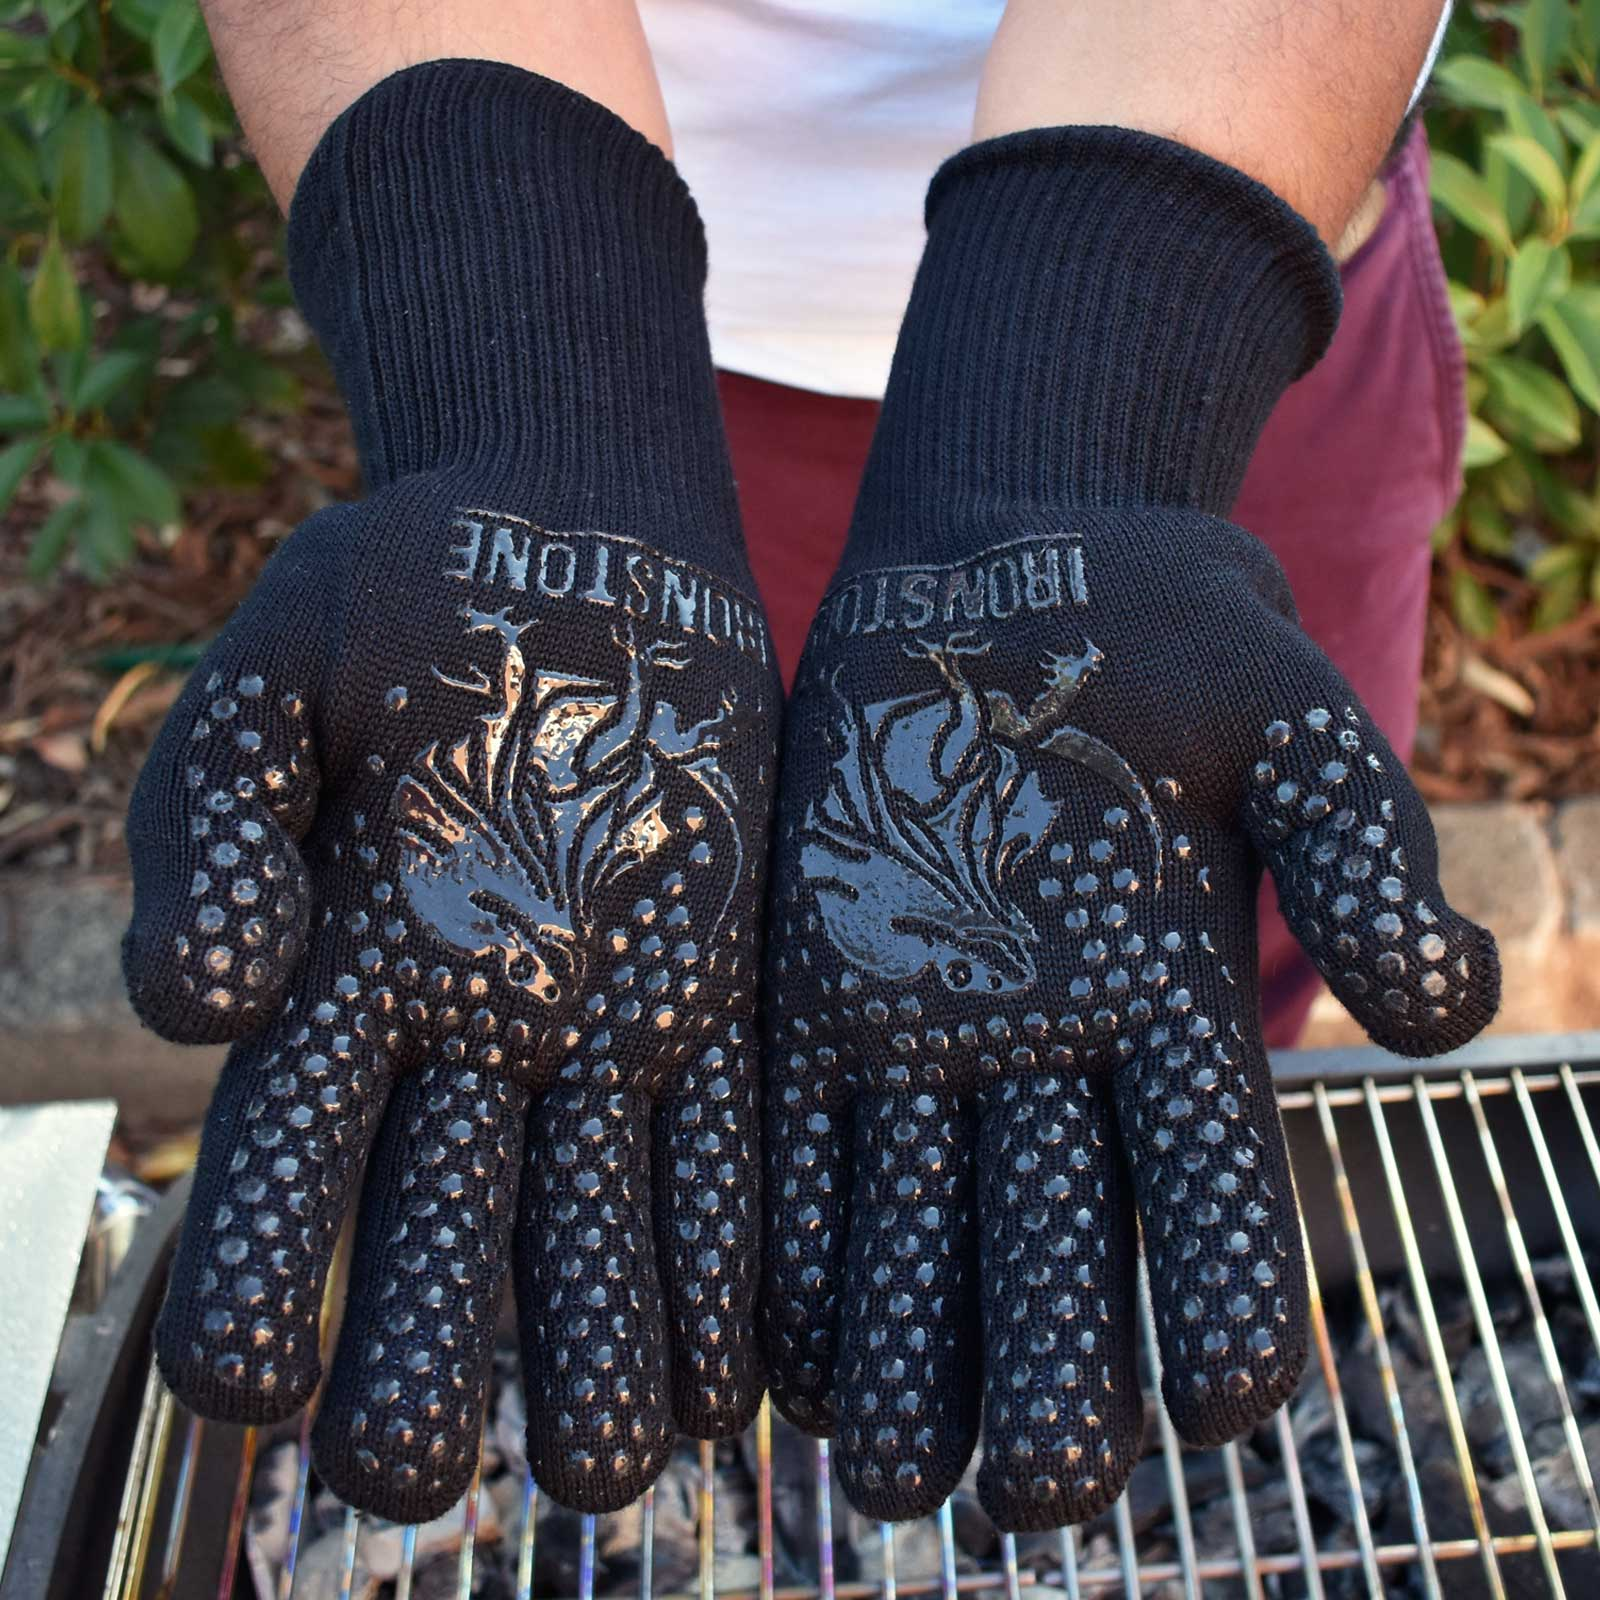 Ironstone-gloves-black4